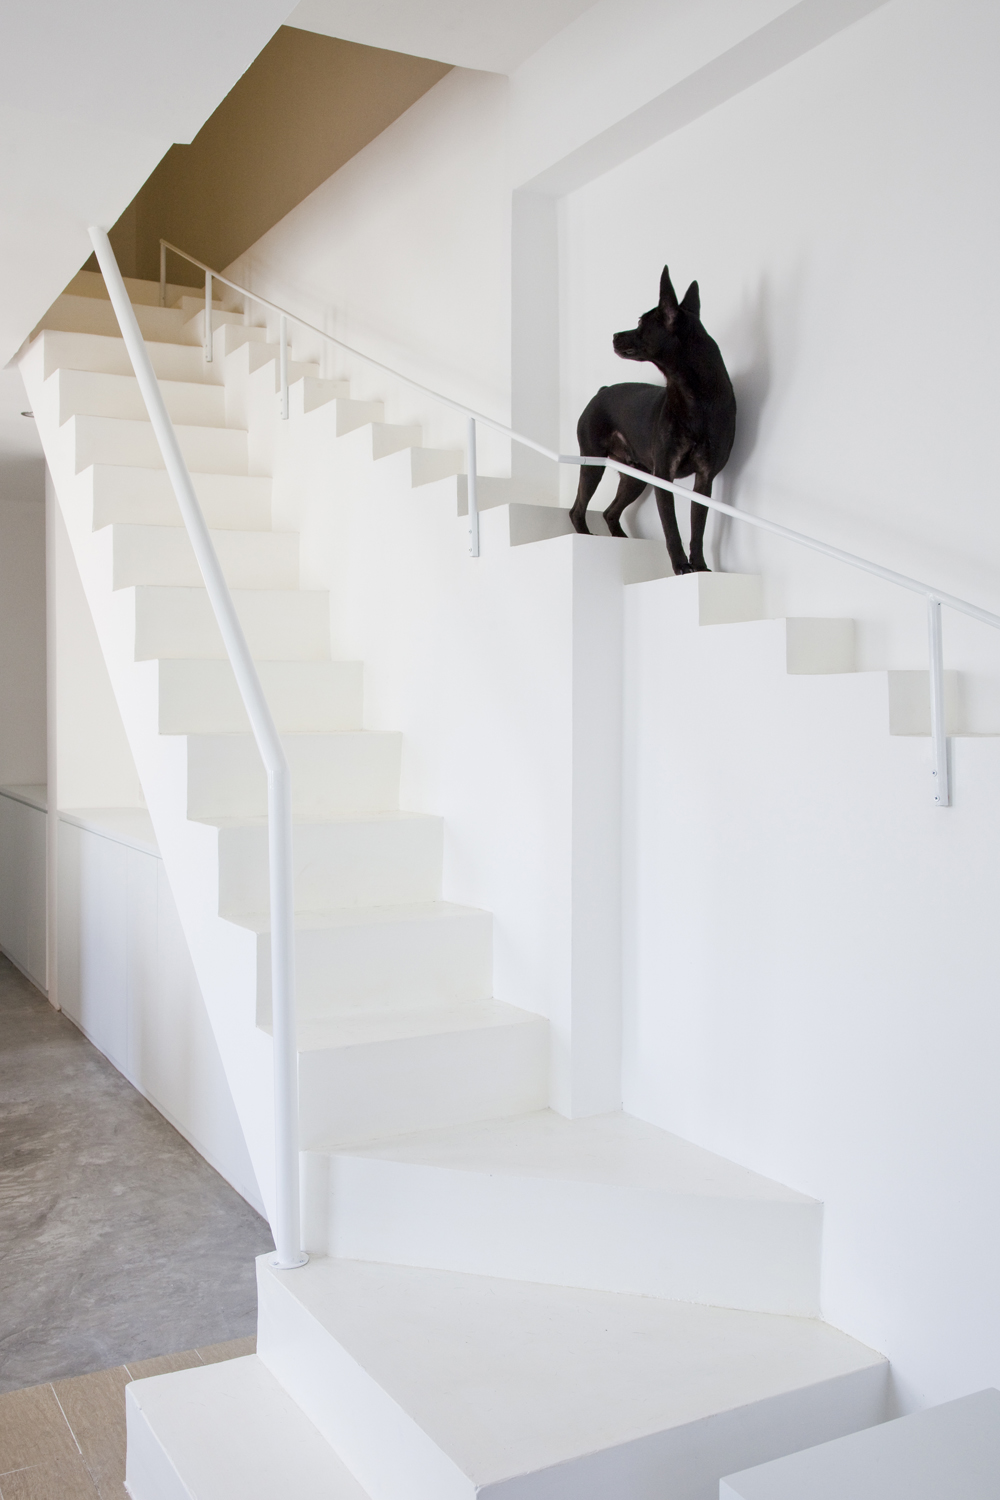 8 interior ideas for dog lover (3)